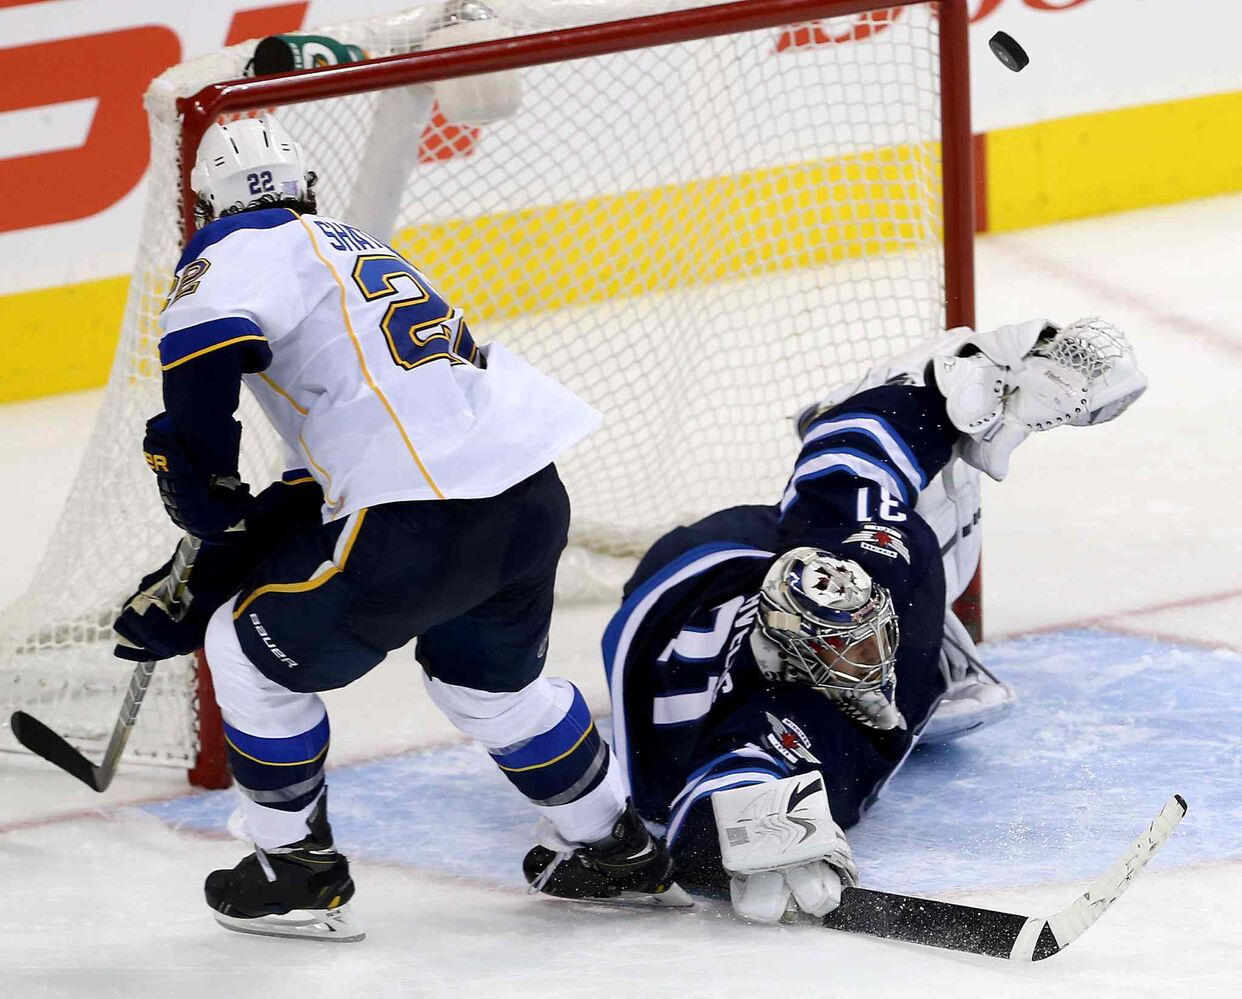 Ondrej Pavelec stops Kevin Shattenkirk of the St. Louis Blues during the shootout. (TREVOR HAGAN / WINNIPEG FREE PRESS)